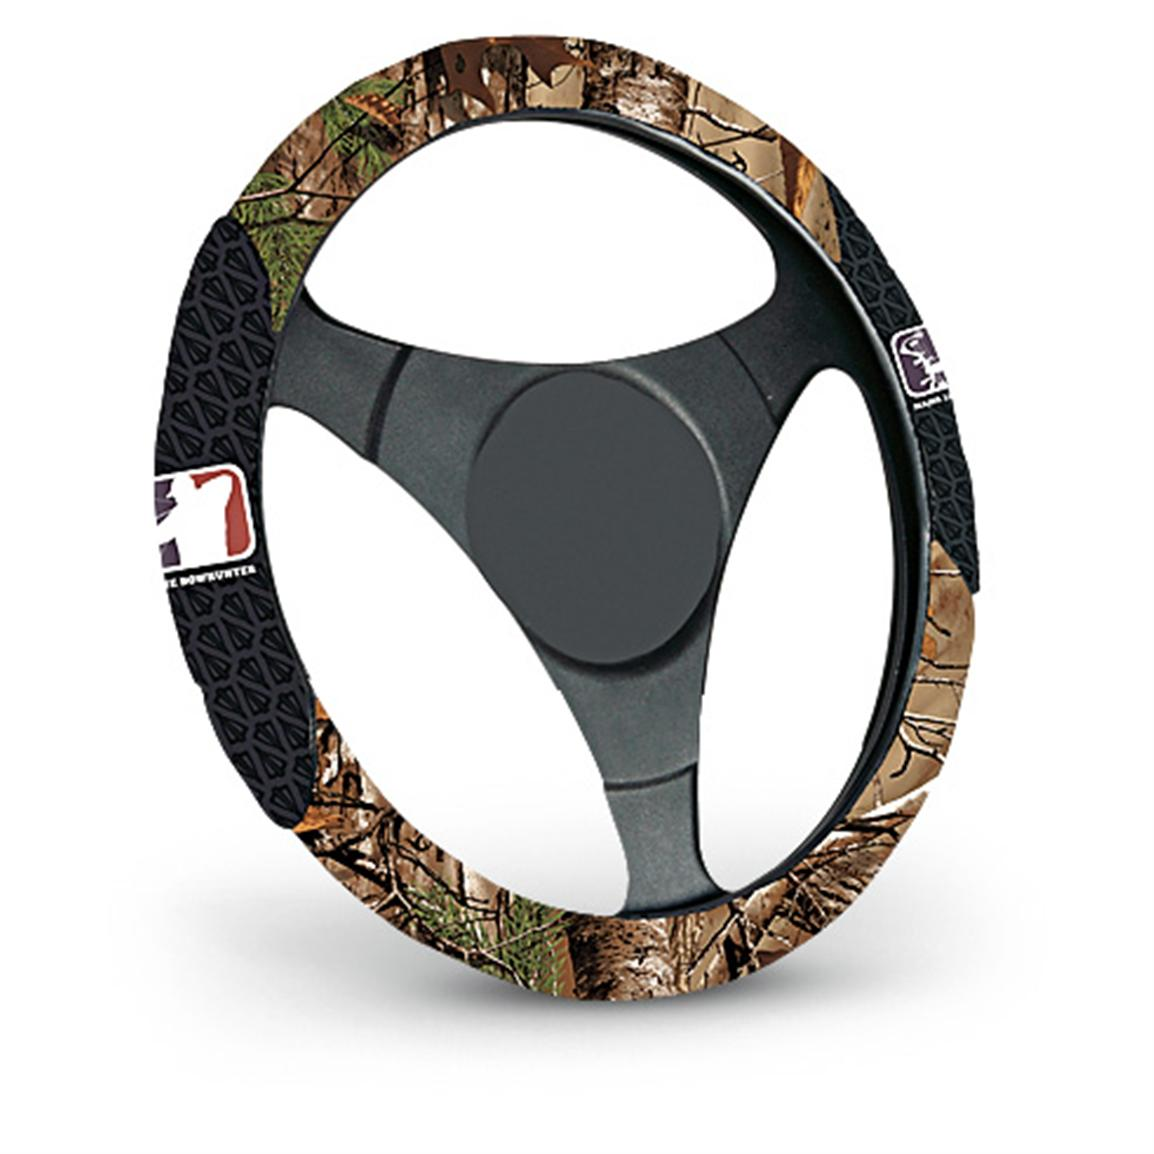 Universal Steering Wheel Cover, MLB Bow Hunter